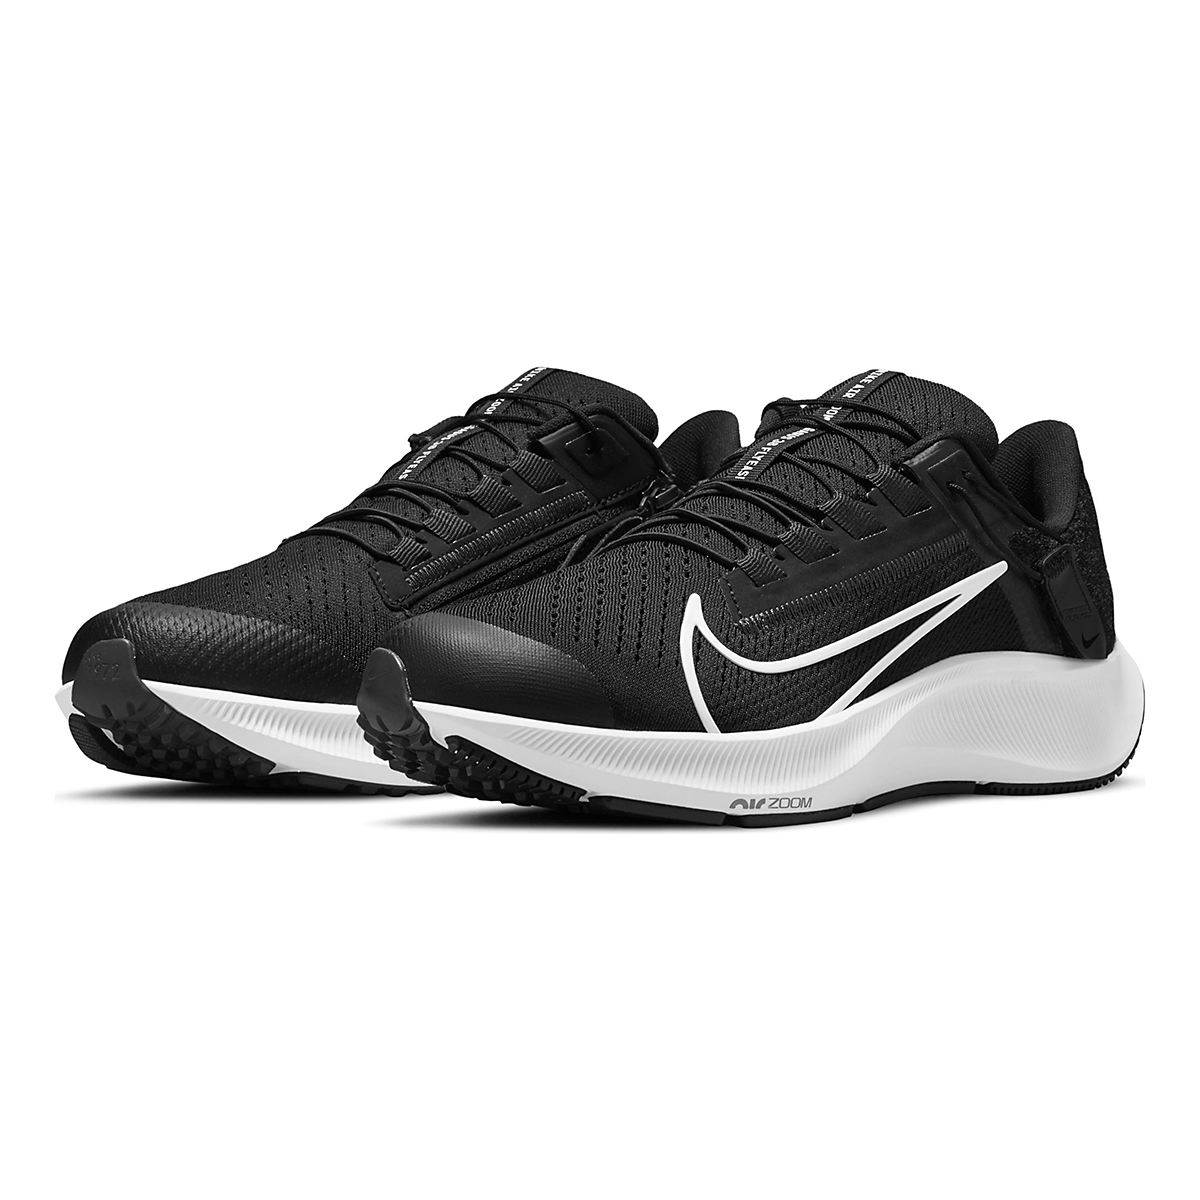 Women's Nike Air Zoom Pegasus 38 Flyease Running Shoe - Color: Black/White/Anthracite - Size: 5 - Width: Regular, Black/White/Anthracite, large, image 3